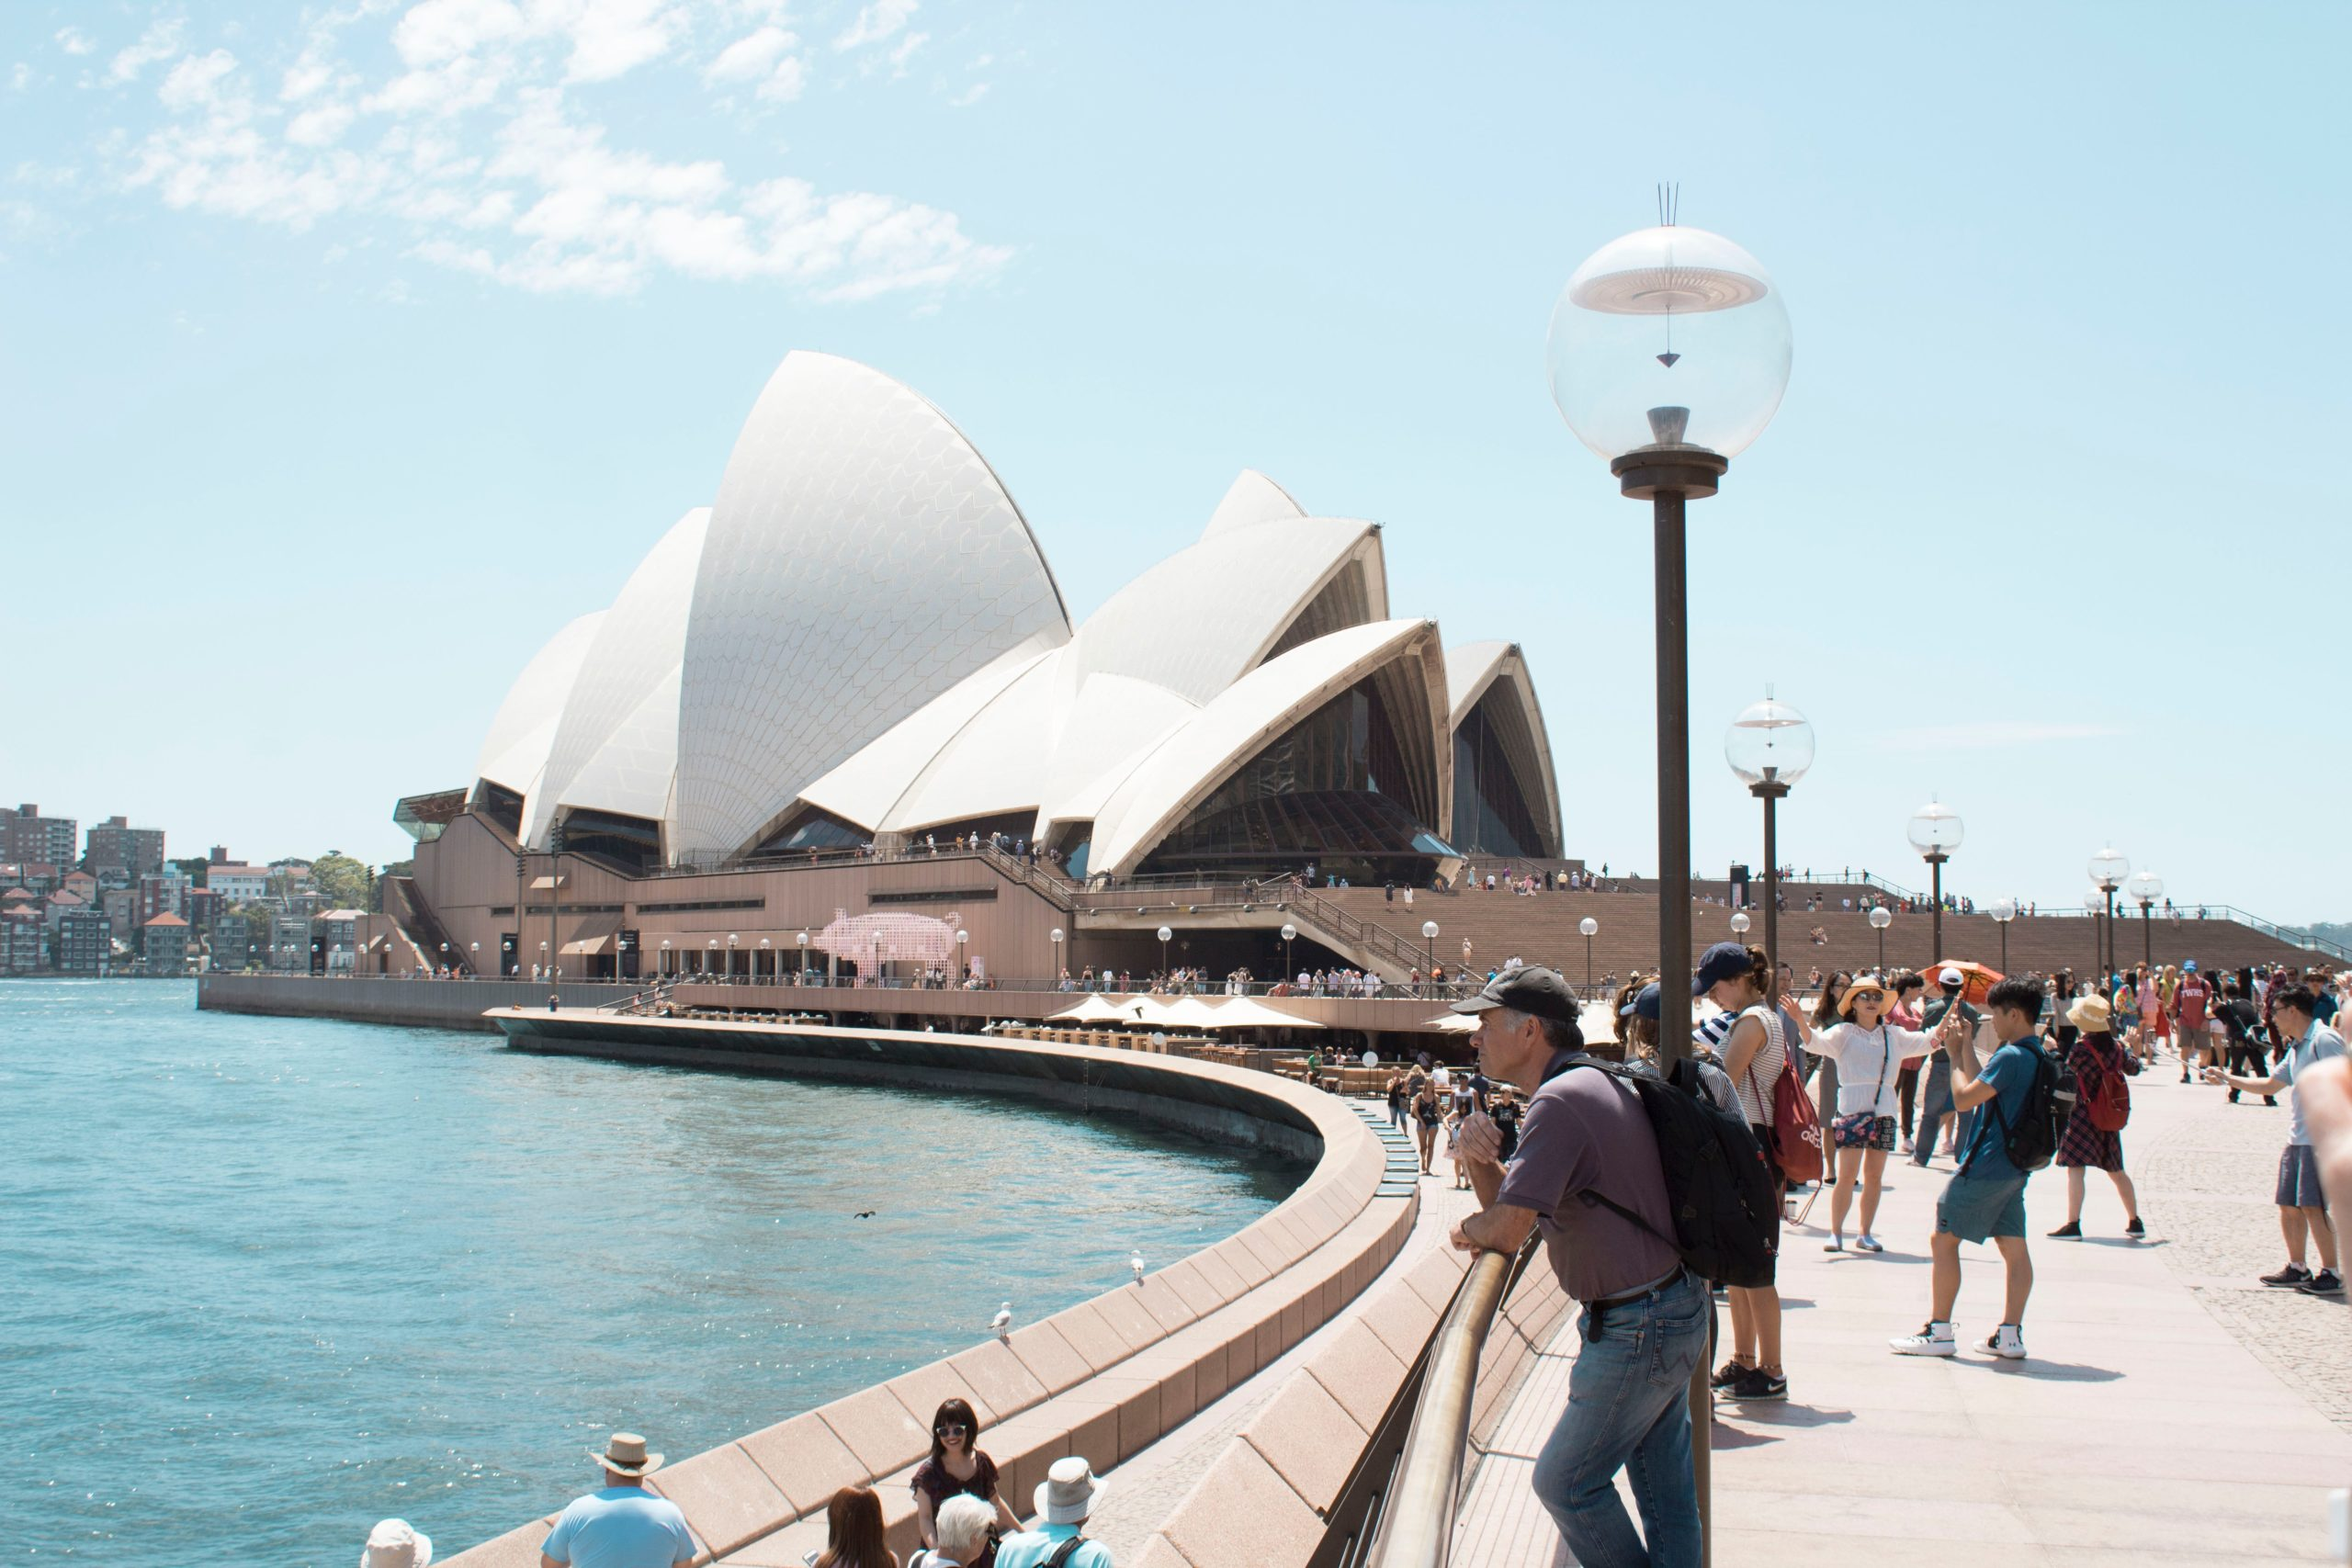 COVID-19 catastrophic for Australia's tourism sector: Research